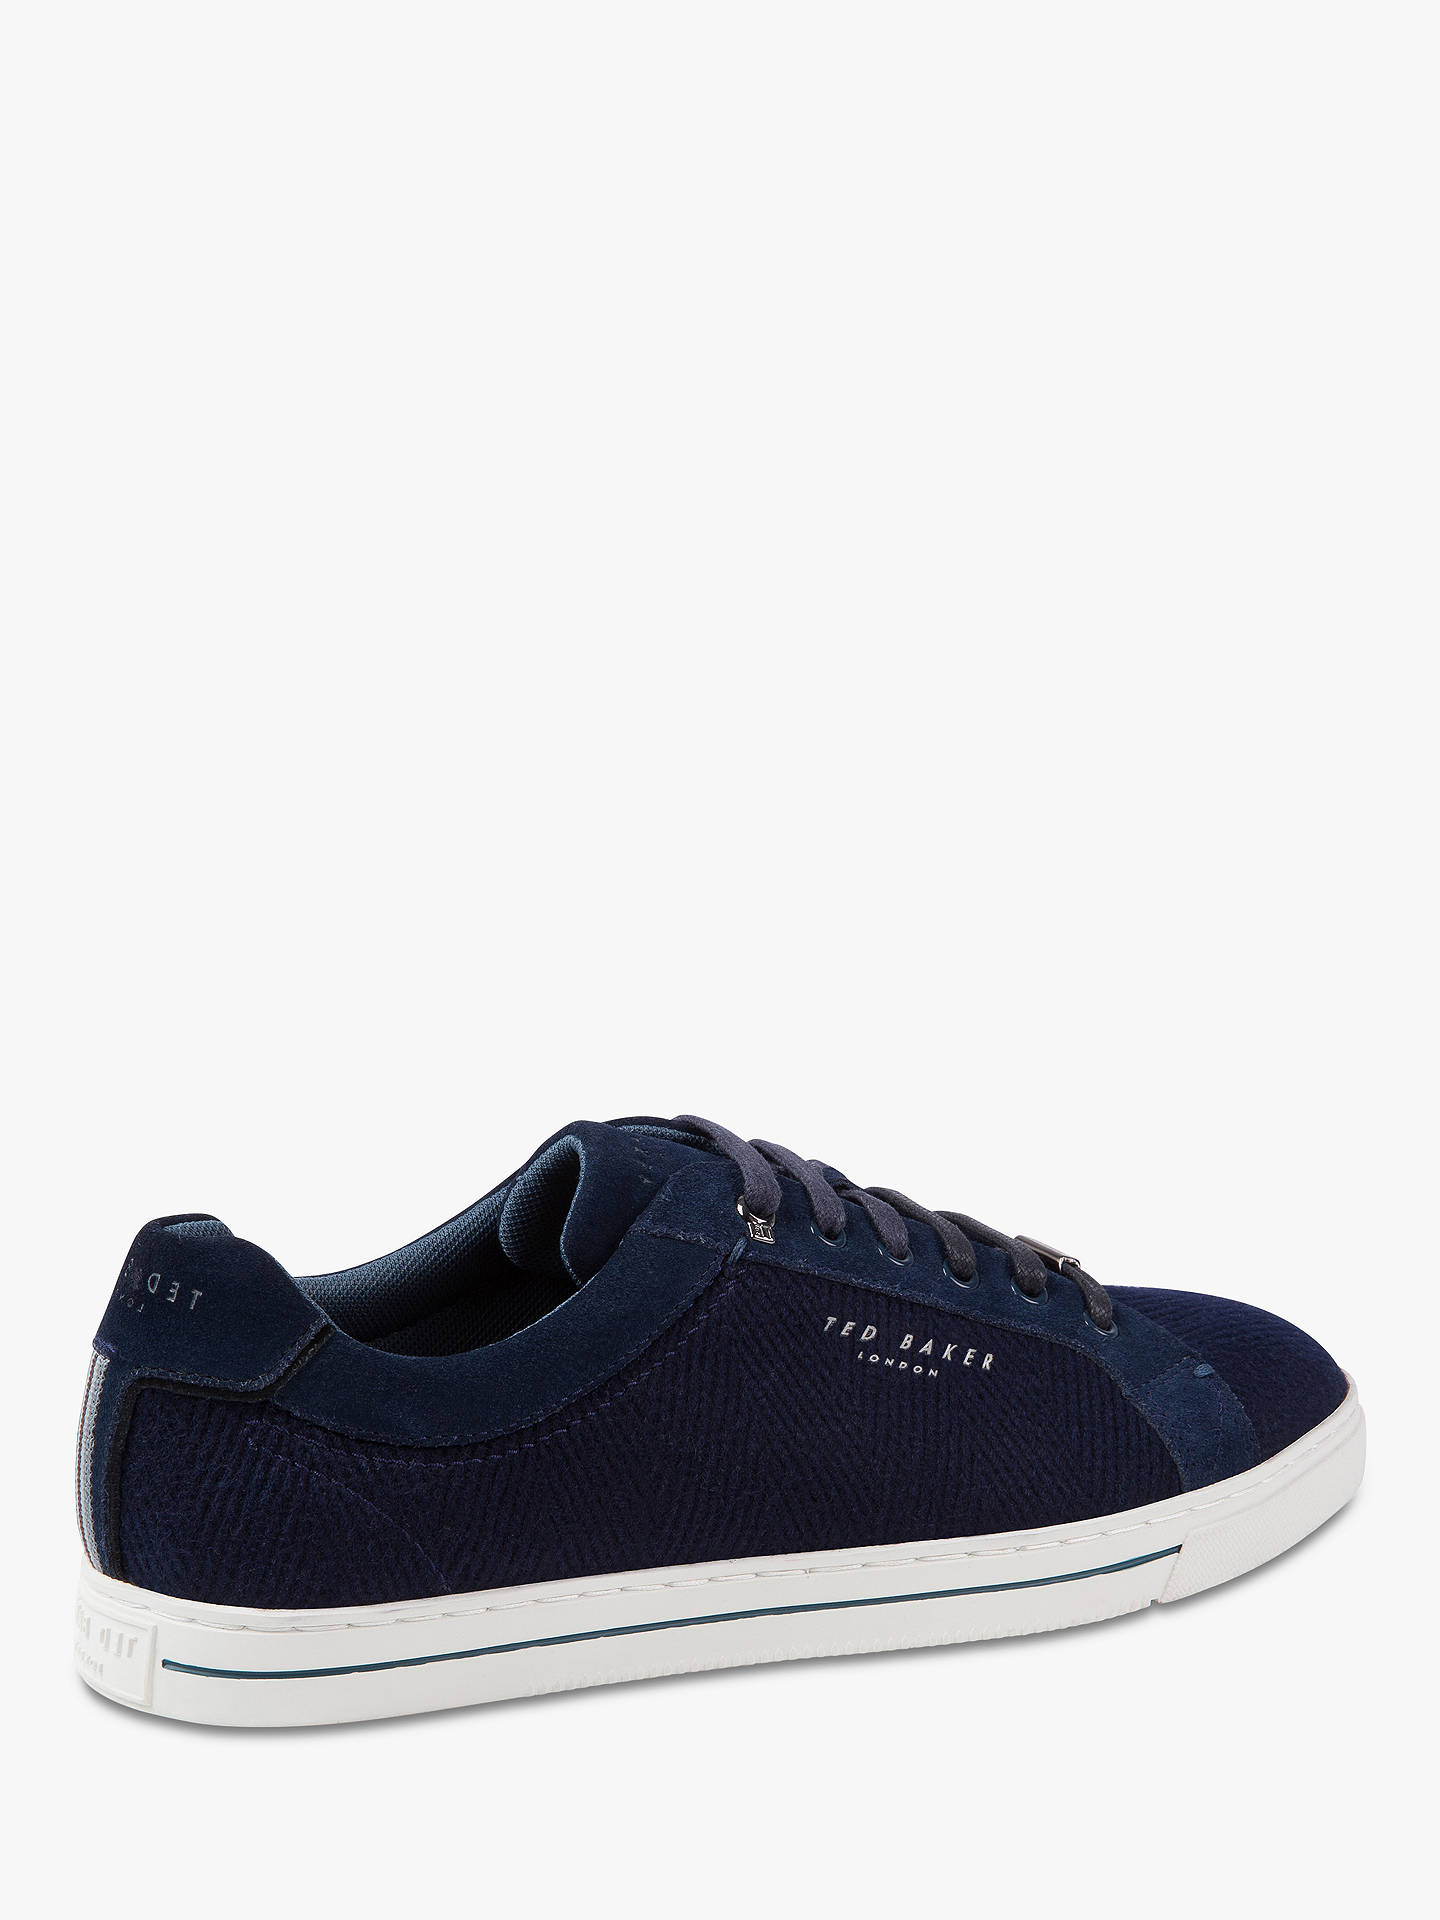 BuyTed Baker Werill Textured Trainers, Dark Blue, 7 Online at johnlewis.com